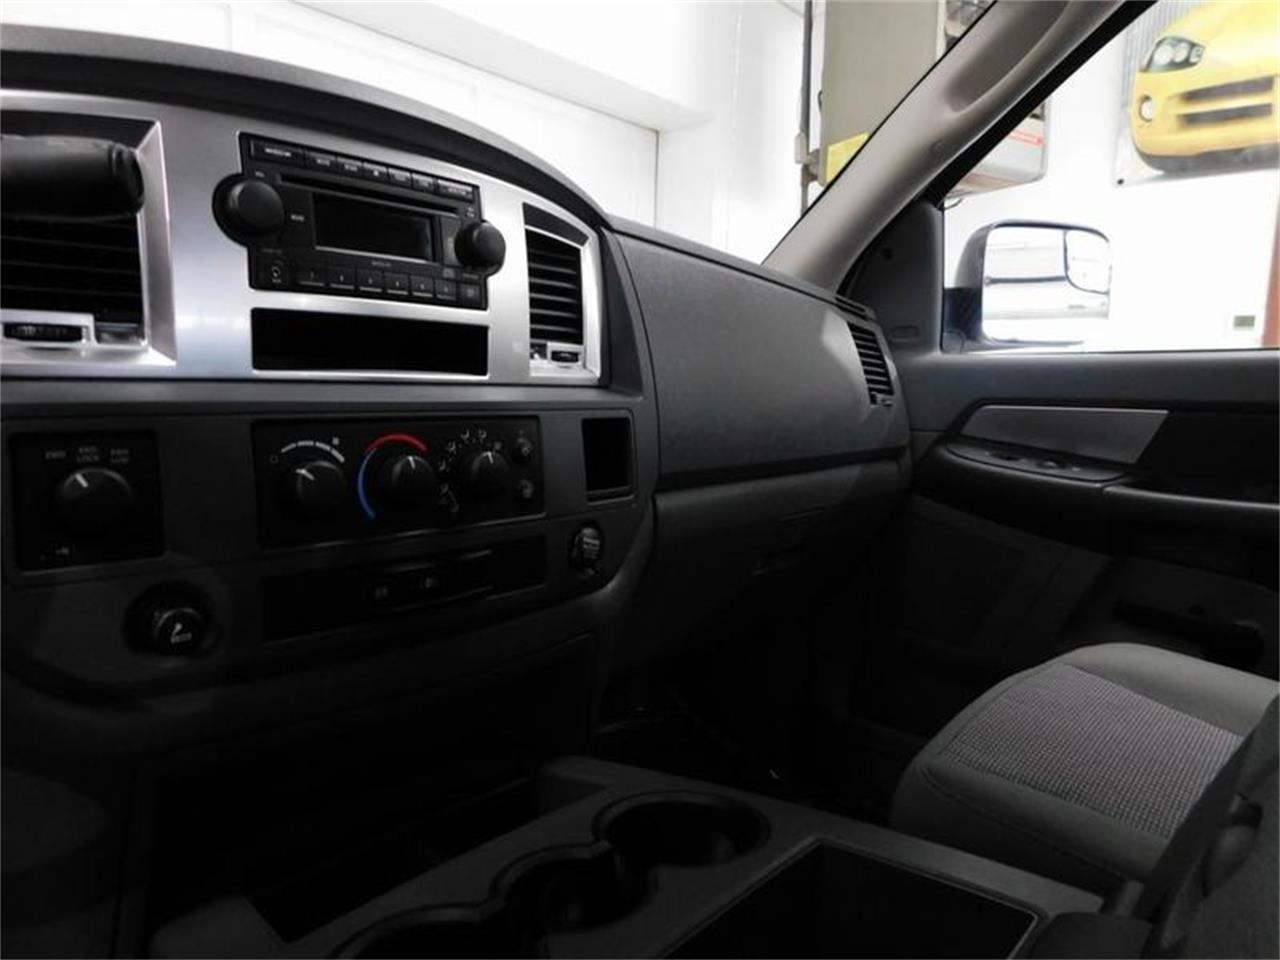 2009 Dodge Ram 3500 for sale in Hamburg, NY – photo 3